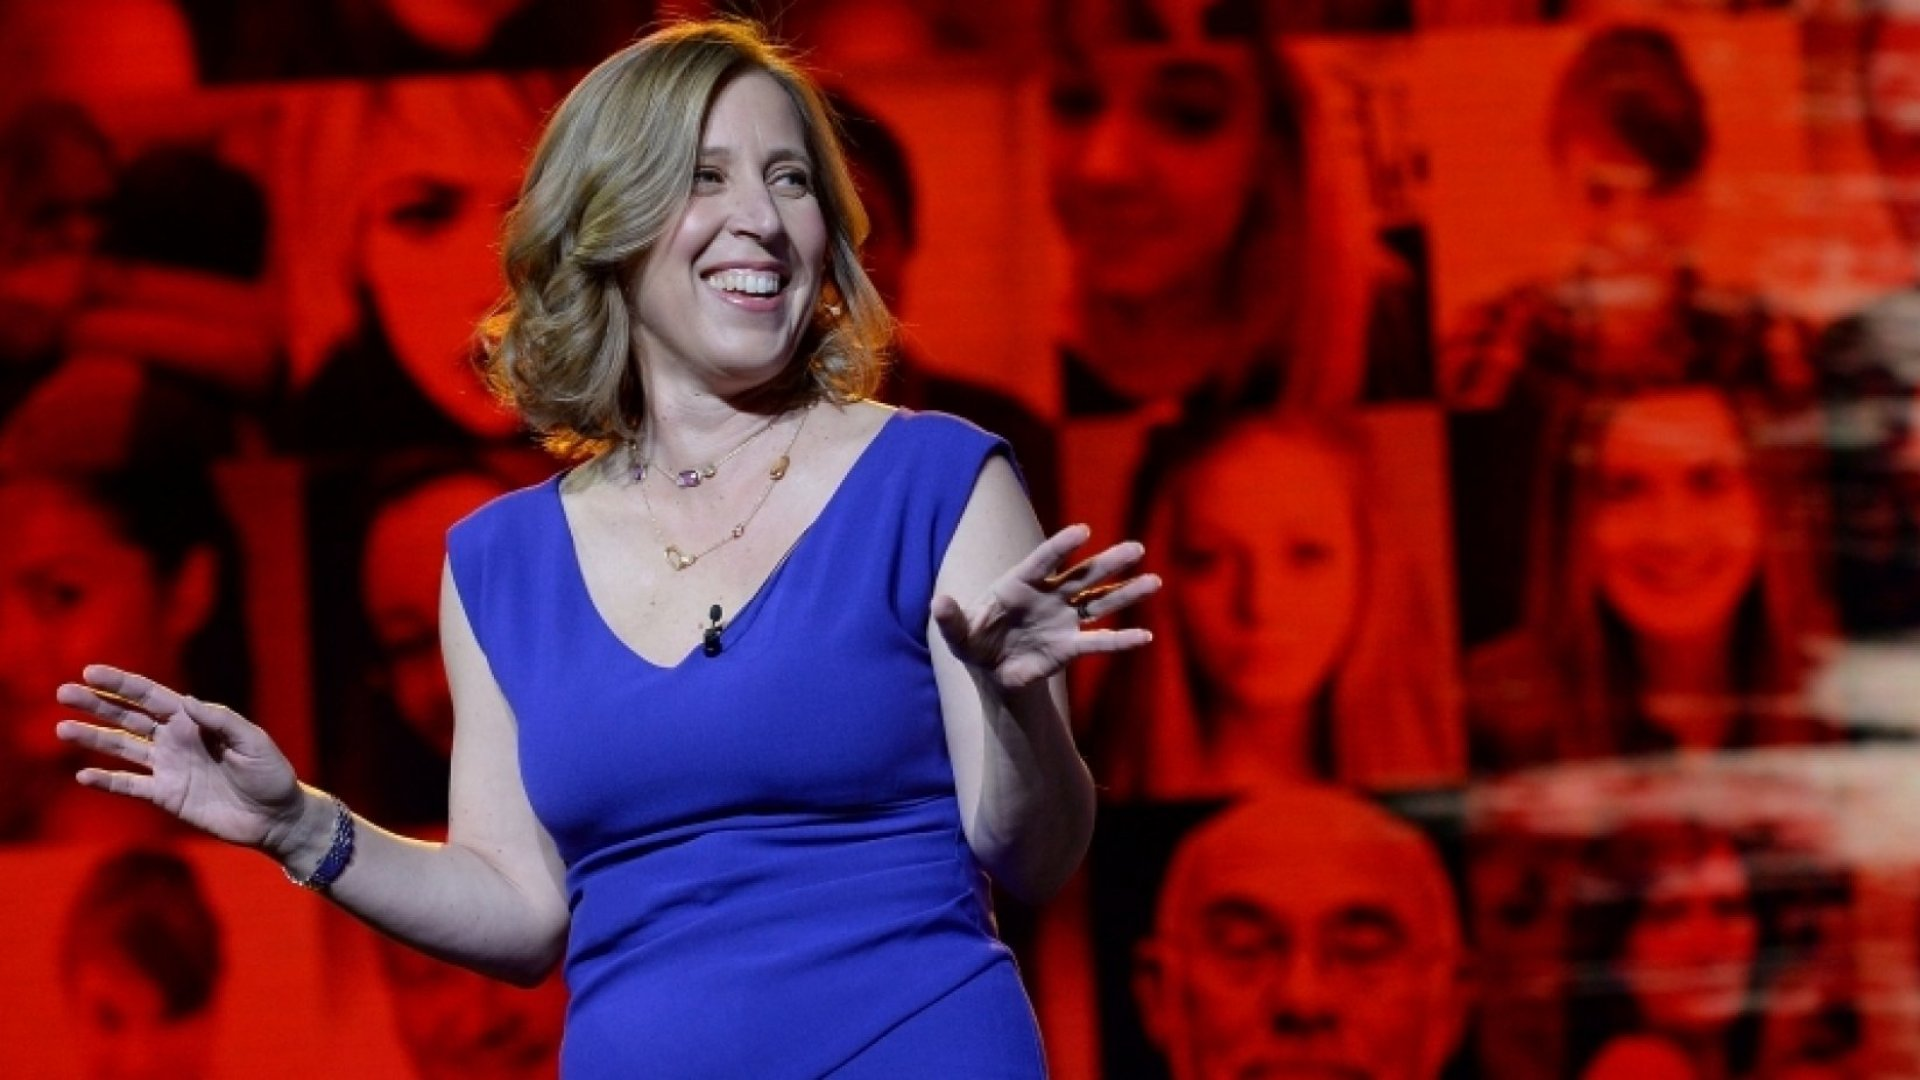 12 Surprising Facts About YouTube CEO Susan Wojcicki